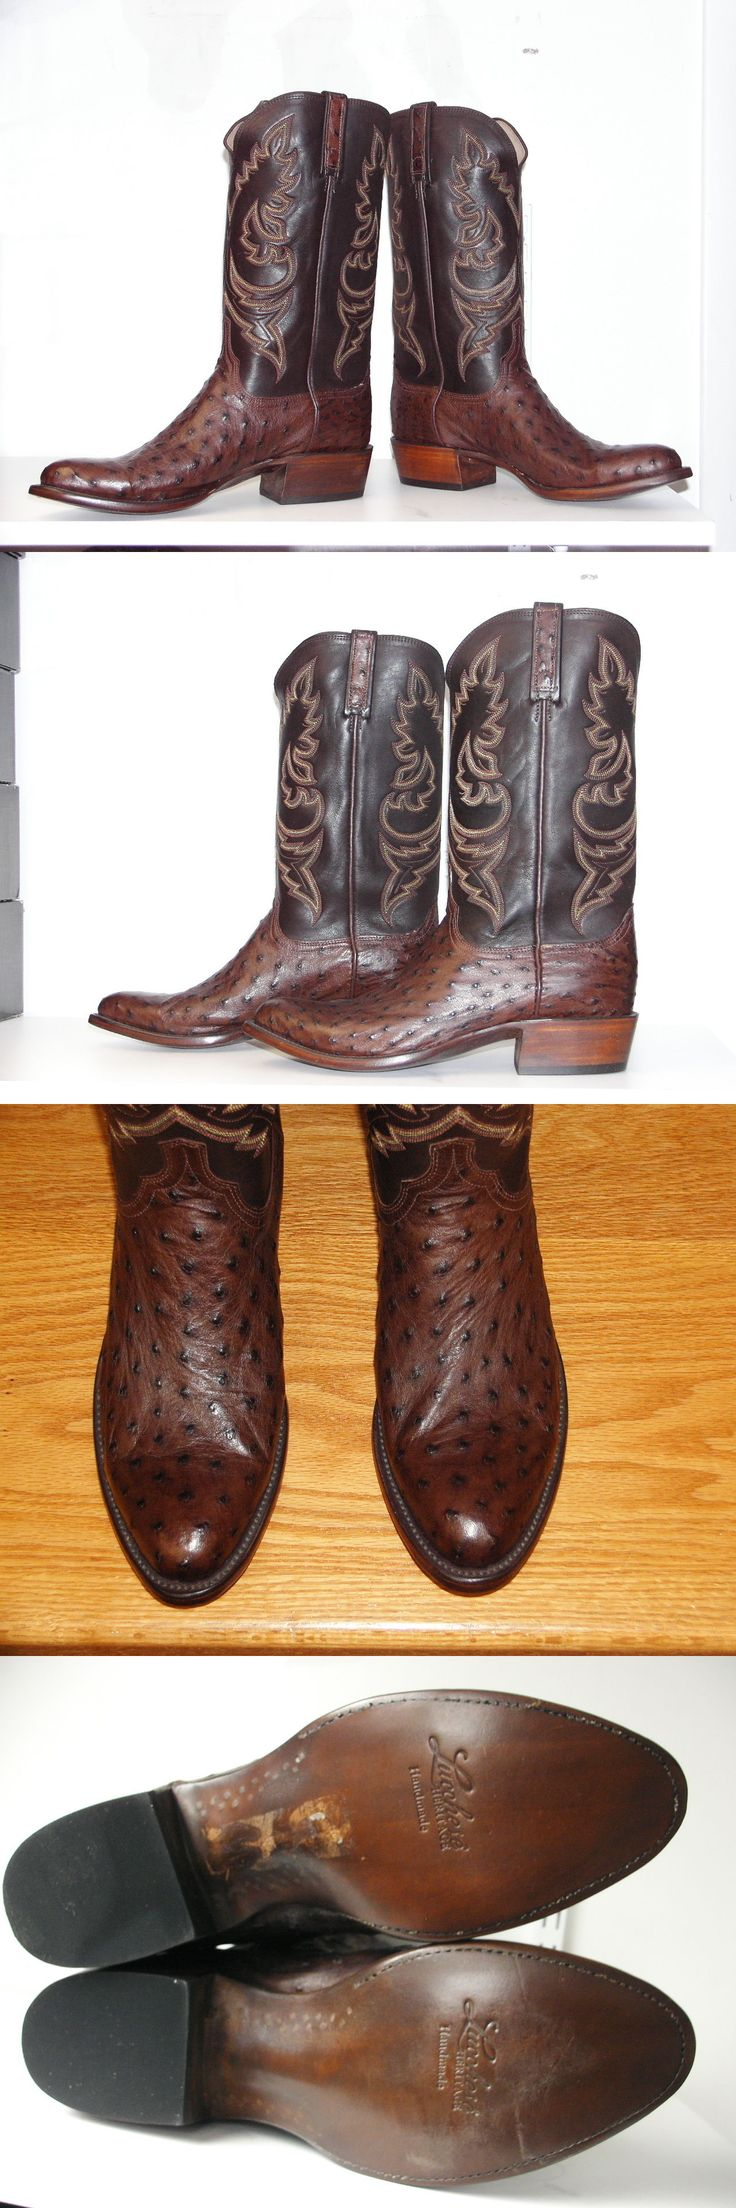 Western Boots 159002: New Lucchese Heritage Men Quill Ostrich Choc Cowboy Boot Hl1000.63 Size 10 1 2 D -> BUY IT NOW ONLY: $399.95 on eBay!